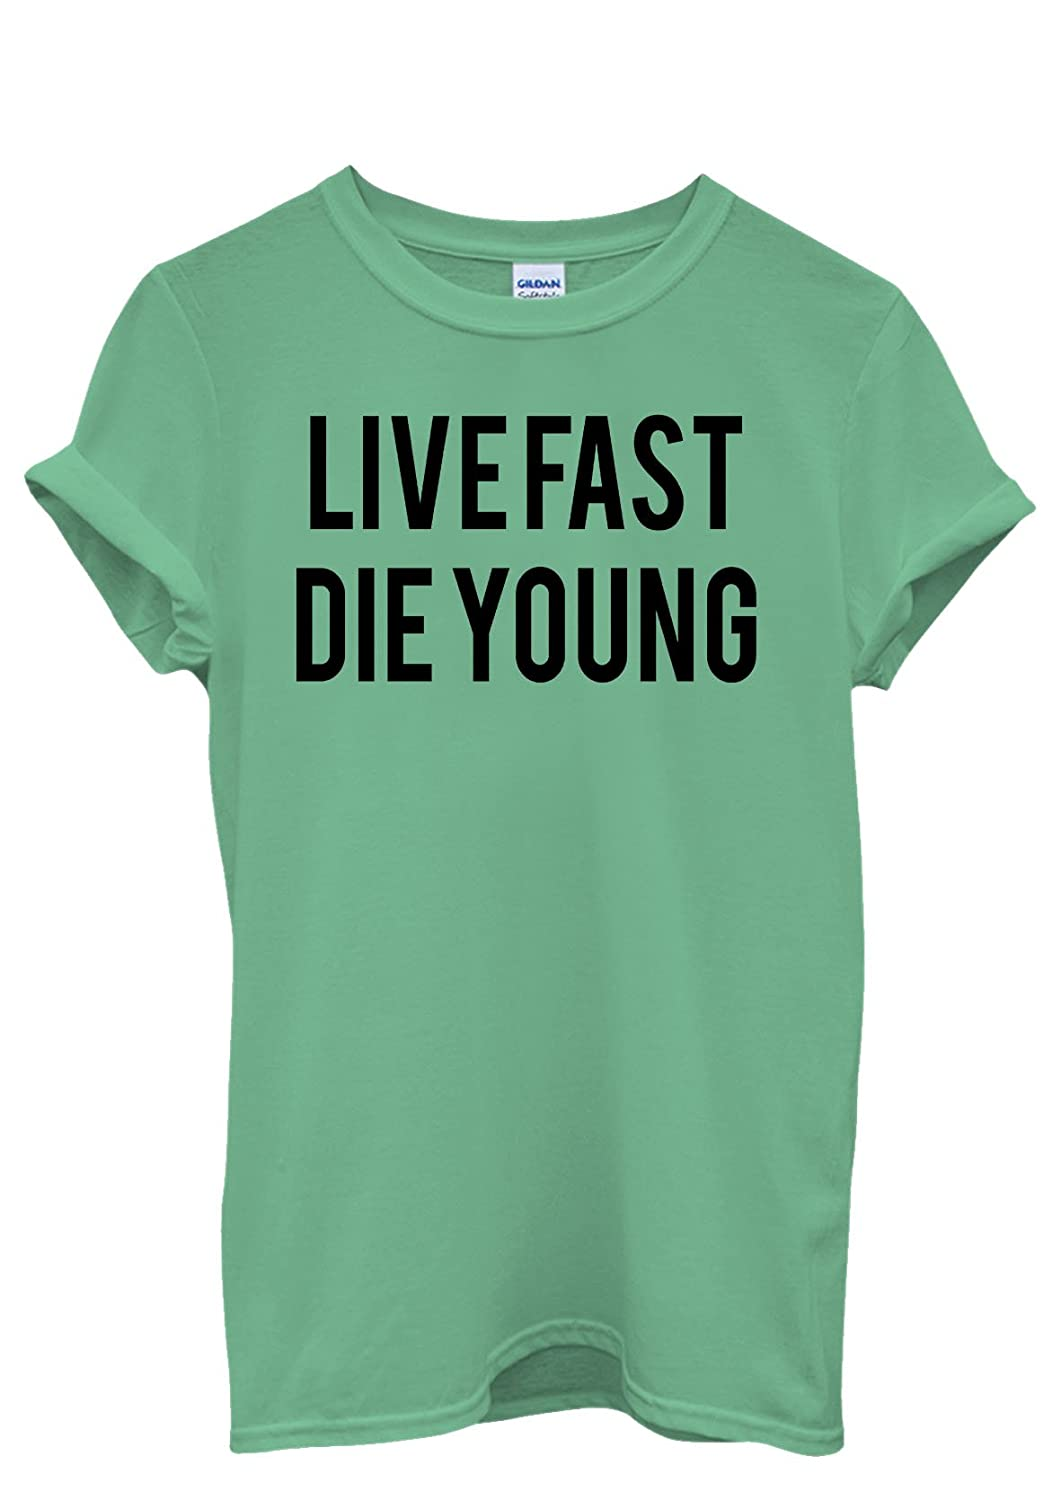 Live Fast Die Young Alcohol Drugs Men Women Damen Herren Unisex Top T Shirt- XXL: Amazon.de: Bekleidung